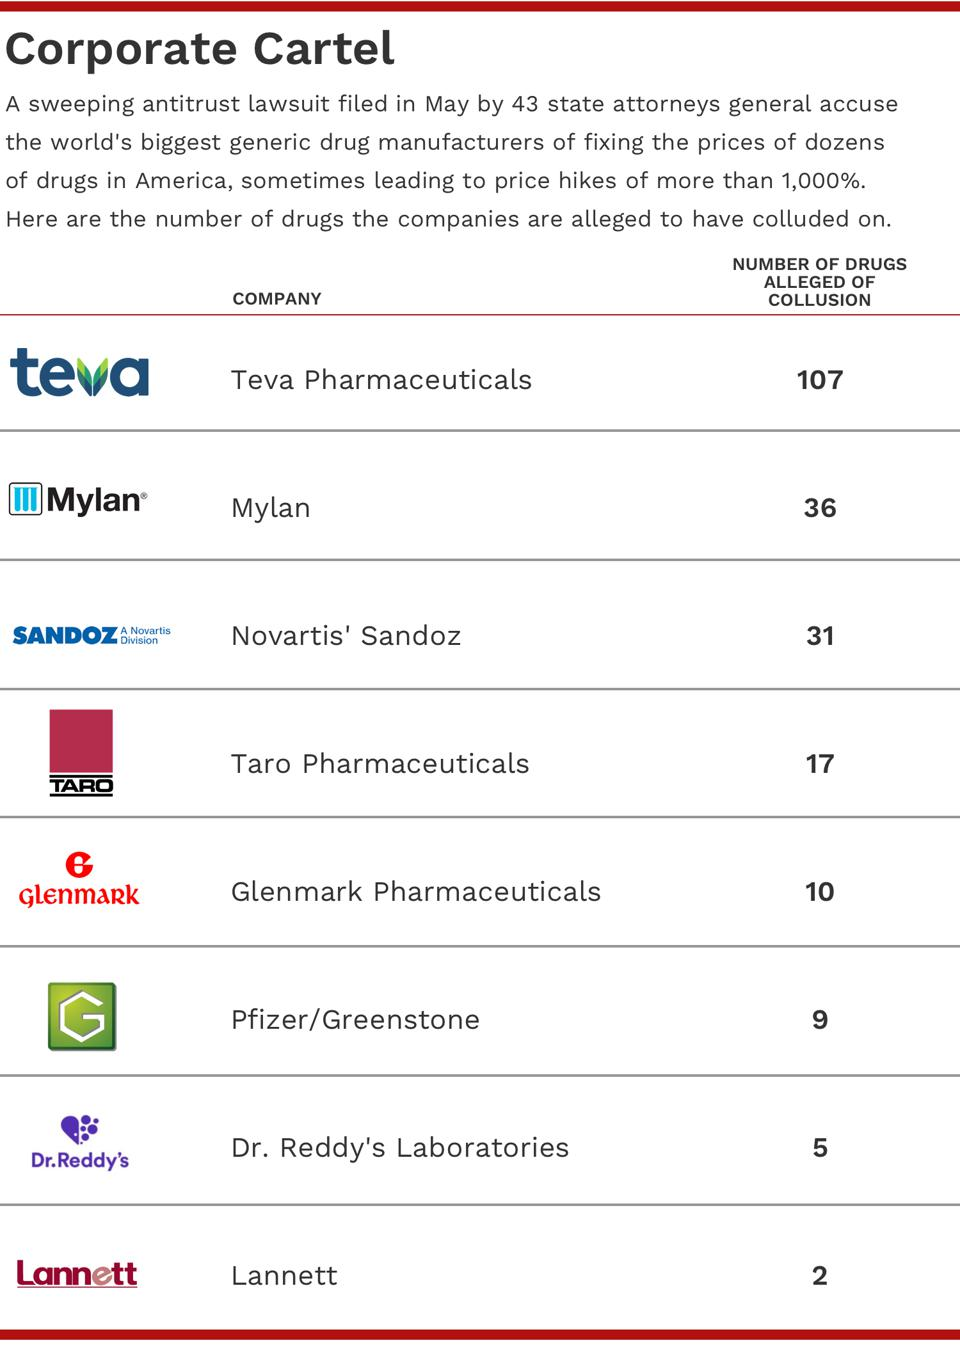 960x0 - This Pharma Exec Is Accused Of Fixing Prices On 107 Drugs